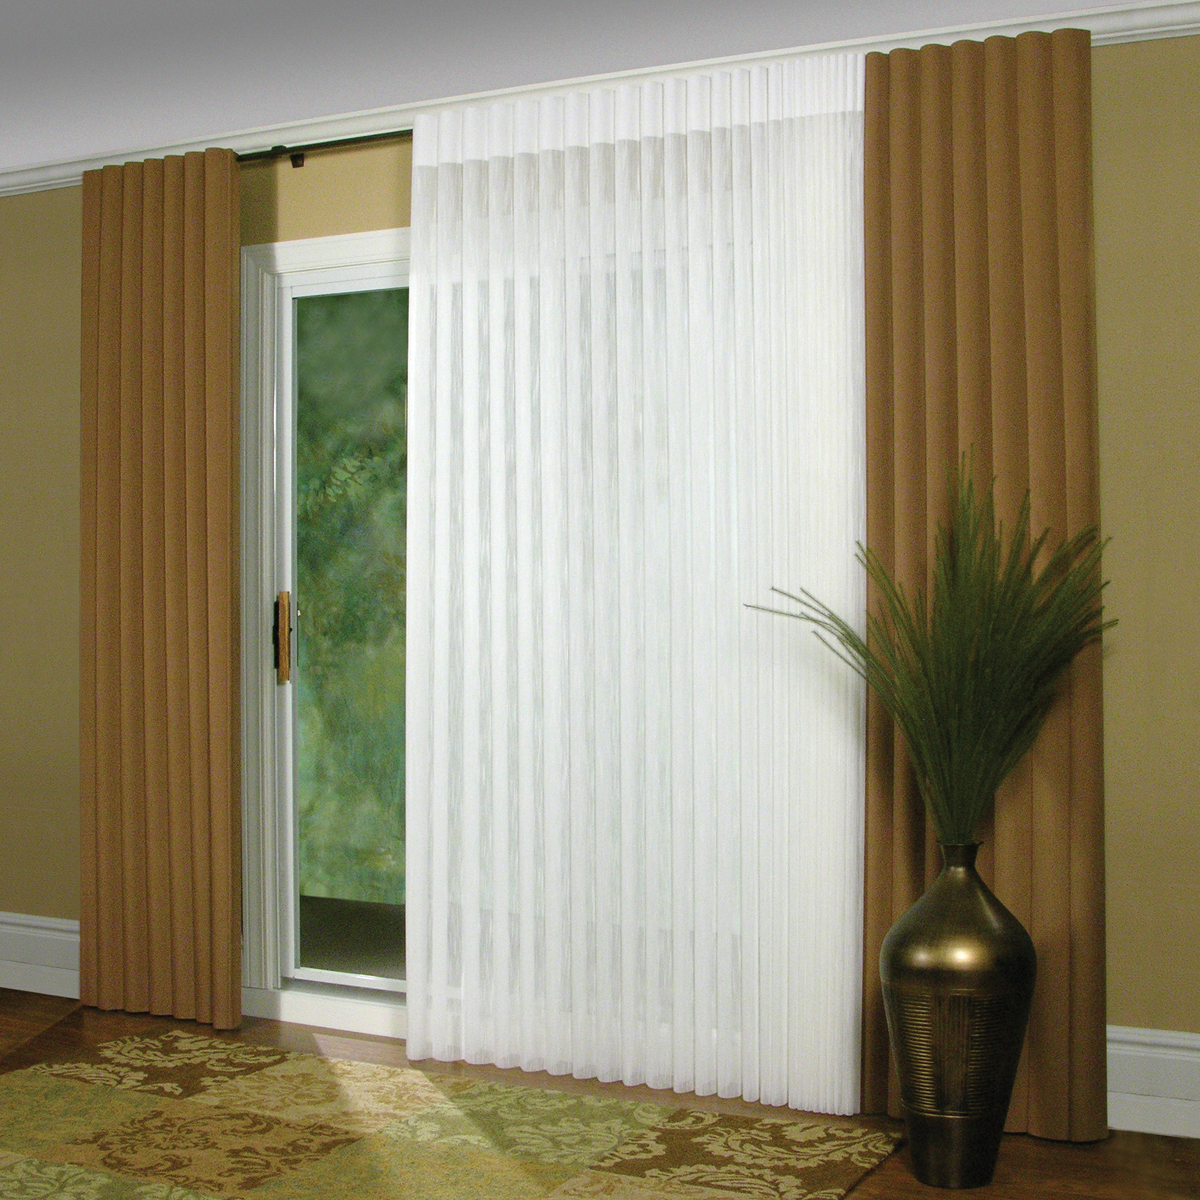 Sliding Glass Door Coverings: Affordable Blinds And Design